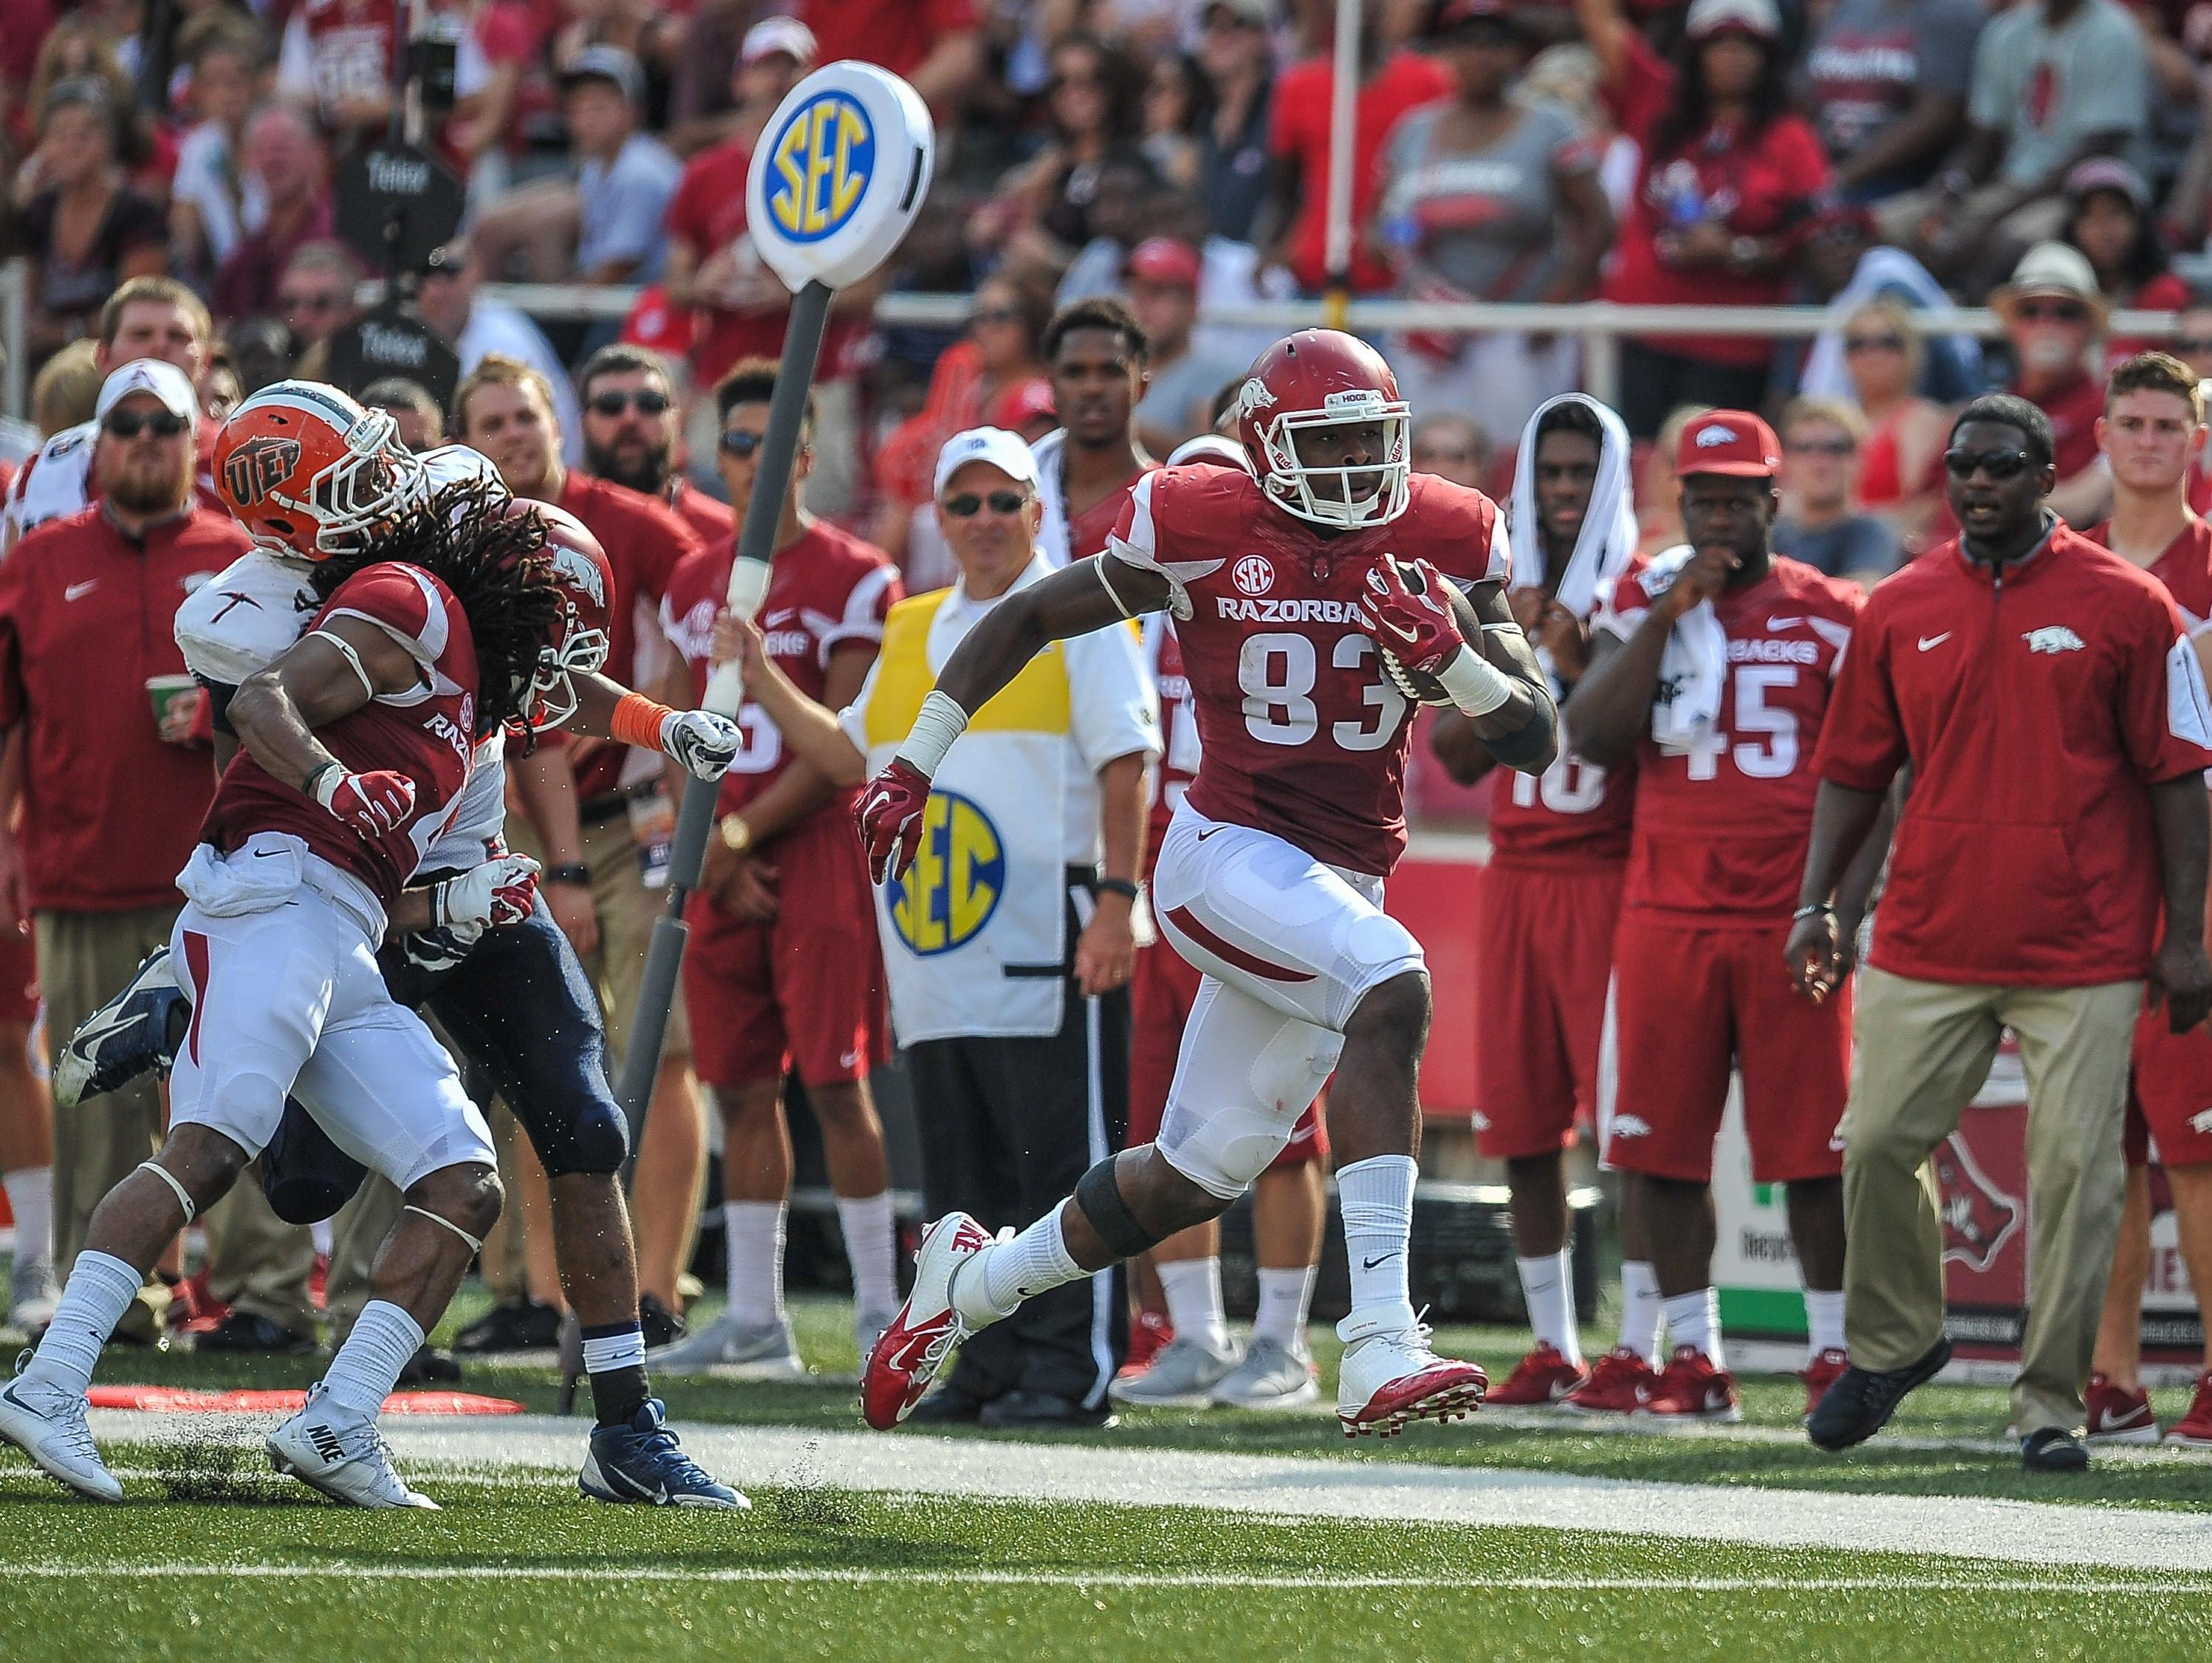 Arkansas tight end Jeremy Sprinkle (83) takes off on a 42-yard reception during action in the Razorbacks' 48-13 season-opening win over UTEP. Sprinkle had his best career game in Week 1, catching two passes for 60 yards.